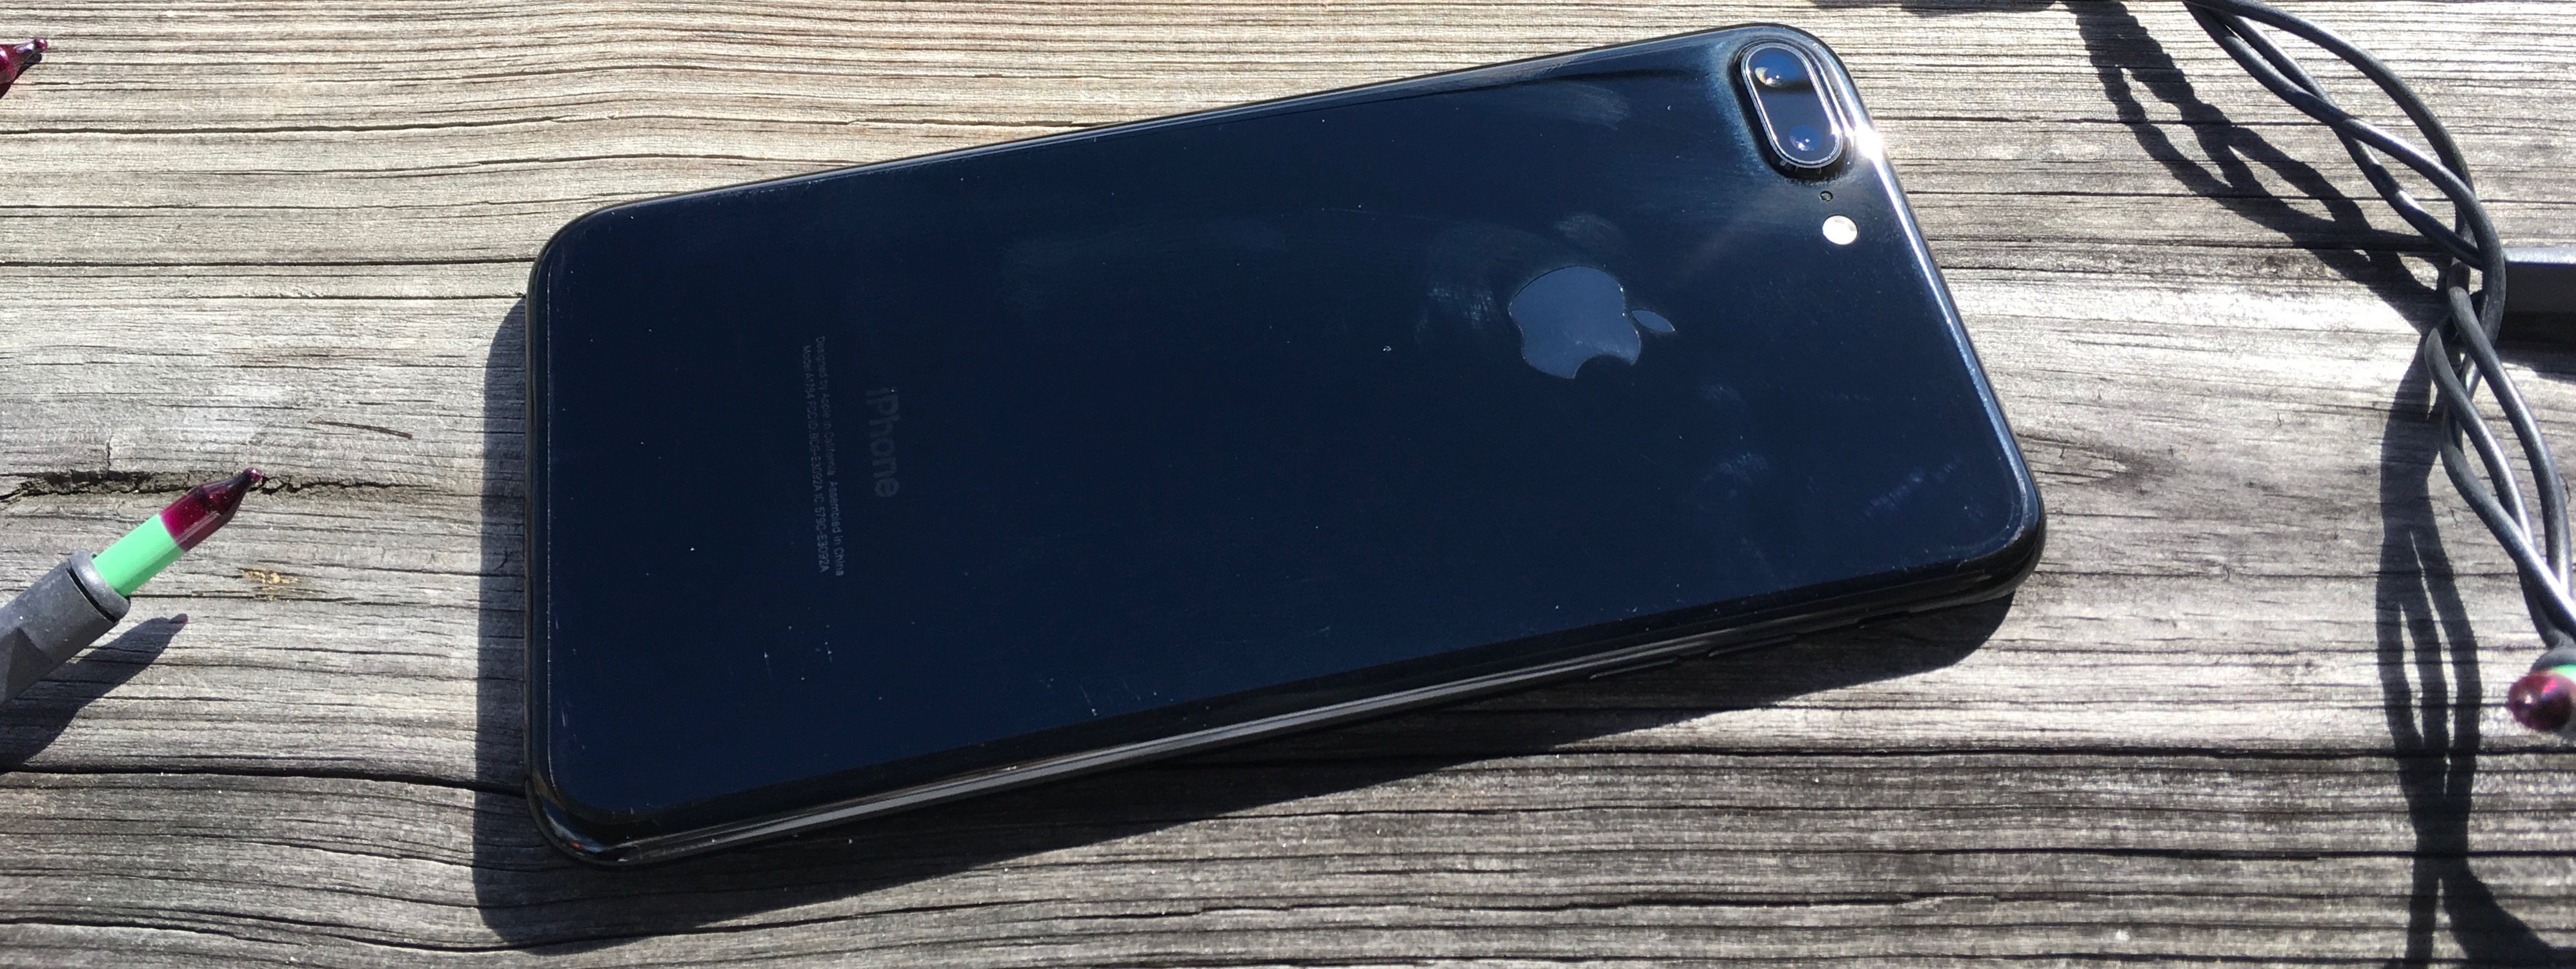 Here's how the jet black iPhone 7 finish holds up without a case ...